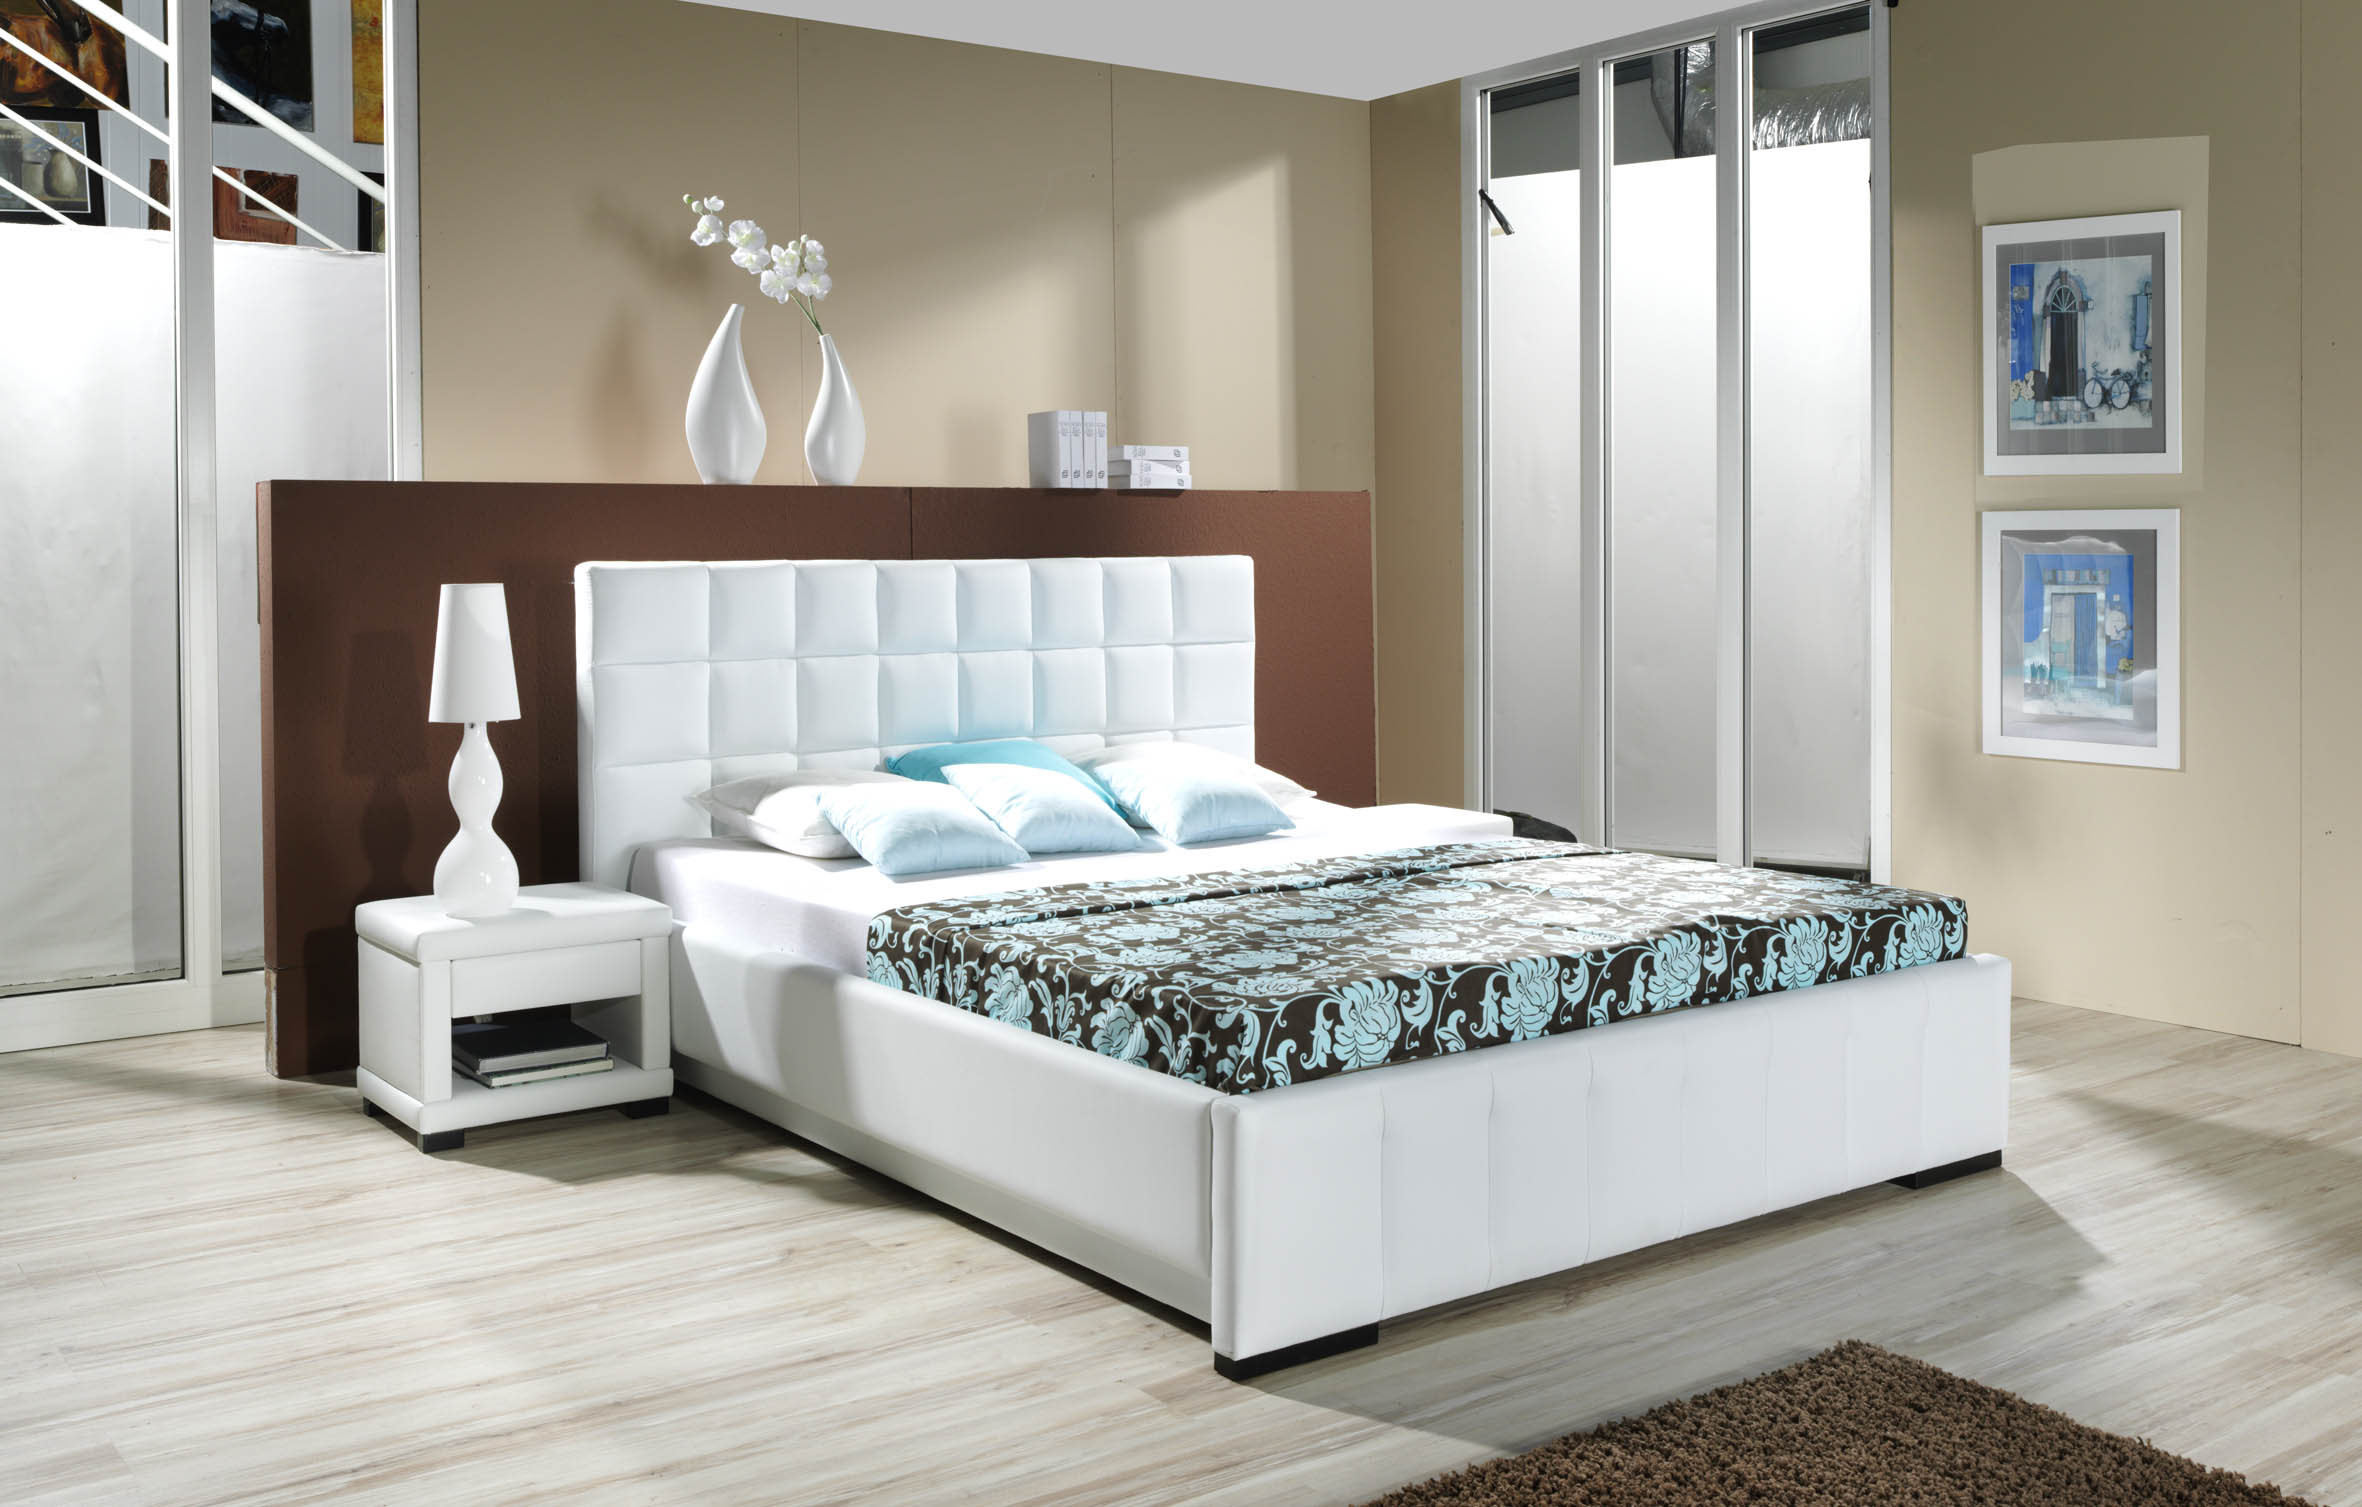 15 Top White Bedroom Furniture Might Be Suitable for Your Room     White Wood Bedroom Furniture Idea With Upholstered Bed And Chest Of Drawers  With Good Room Arrangement